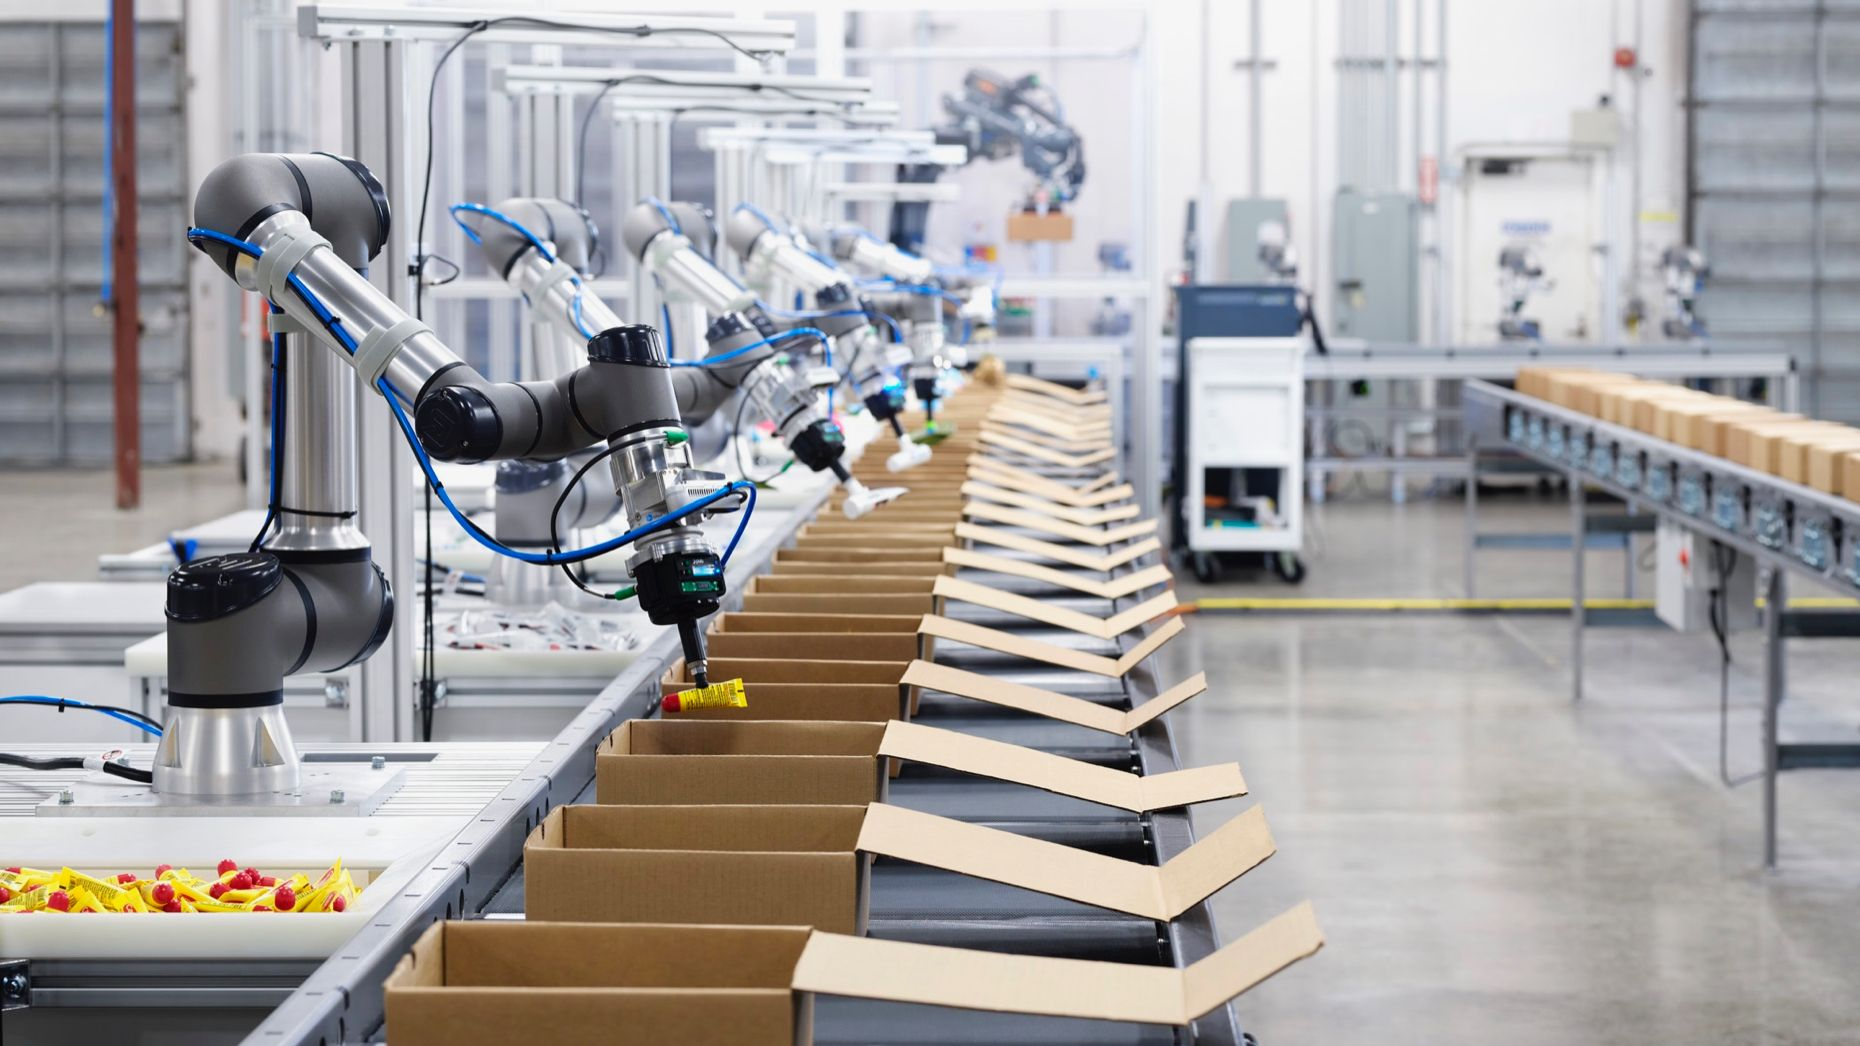 Image of mechanical robots picking and packing products into boxes.